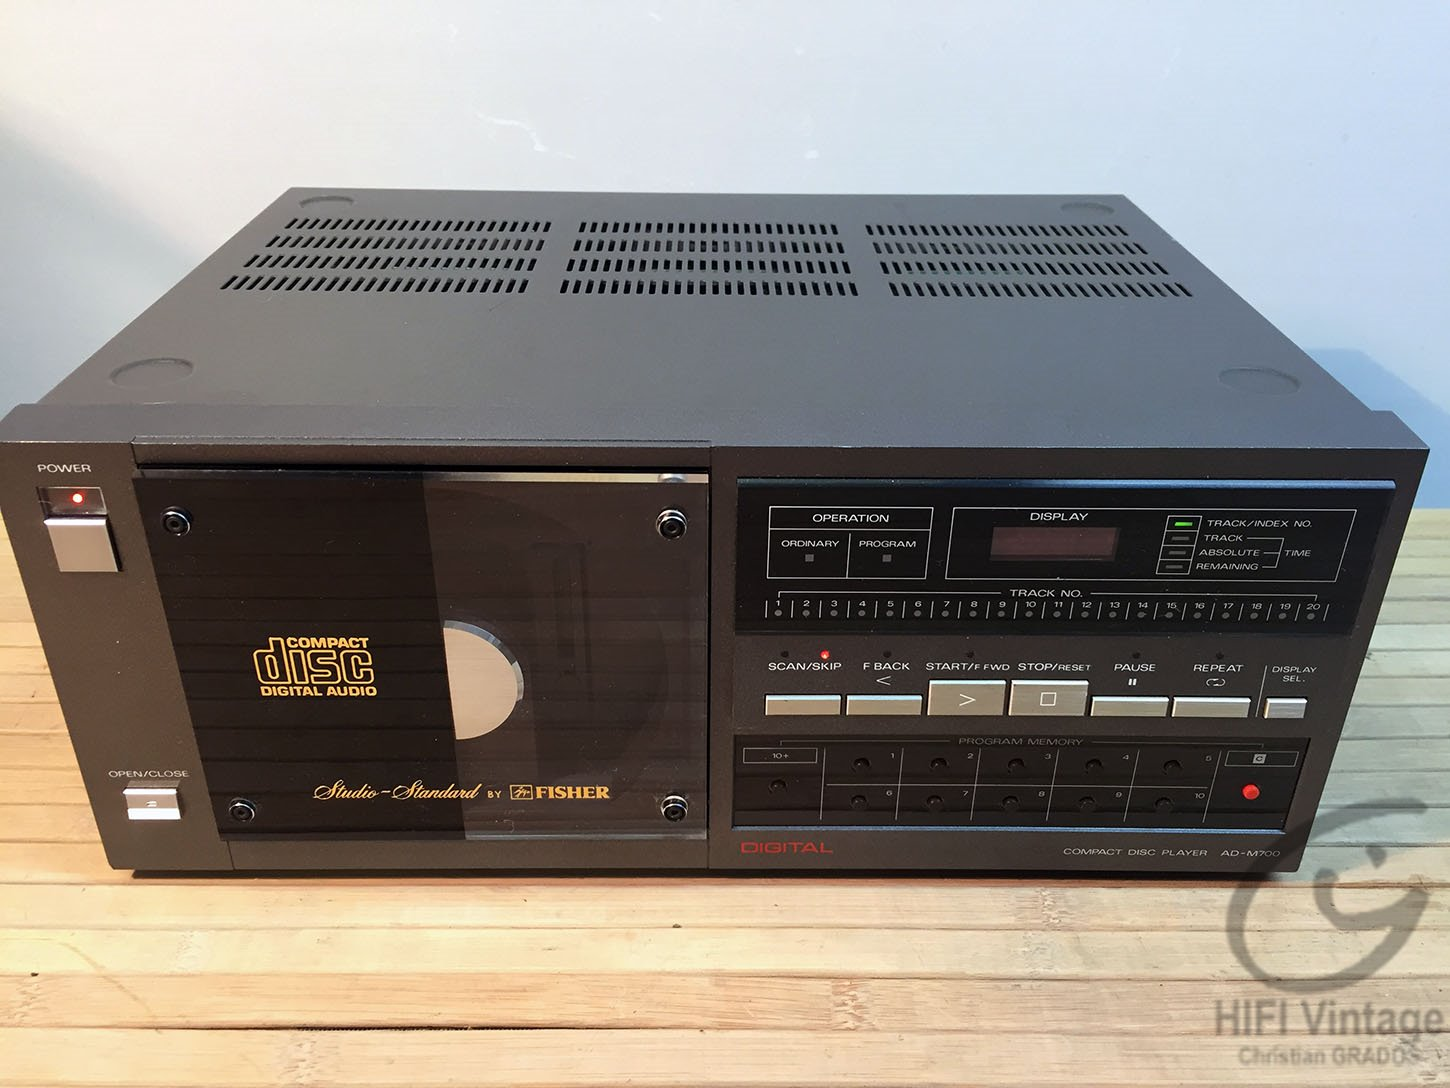 FISHER AD-M700 Hifi vintage réparations